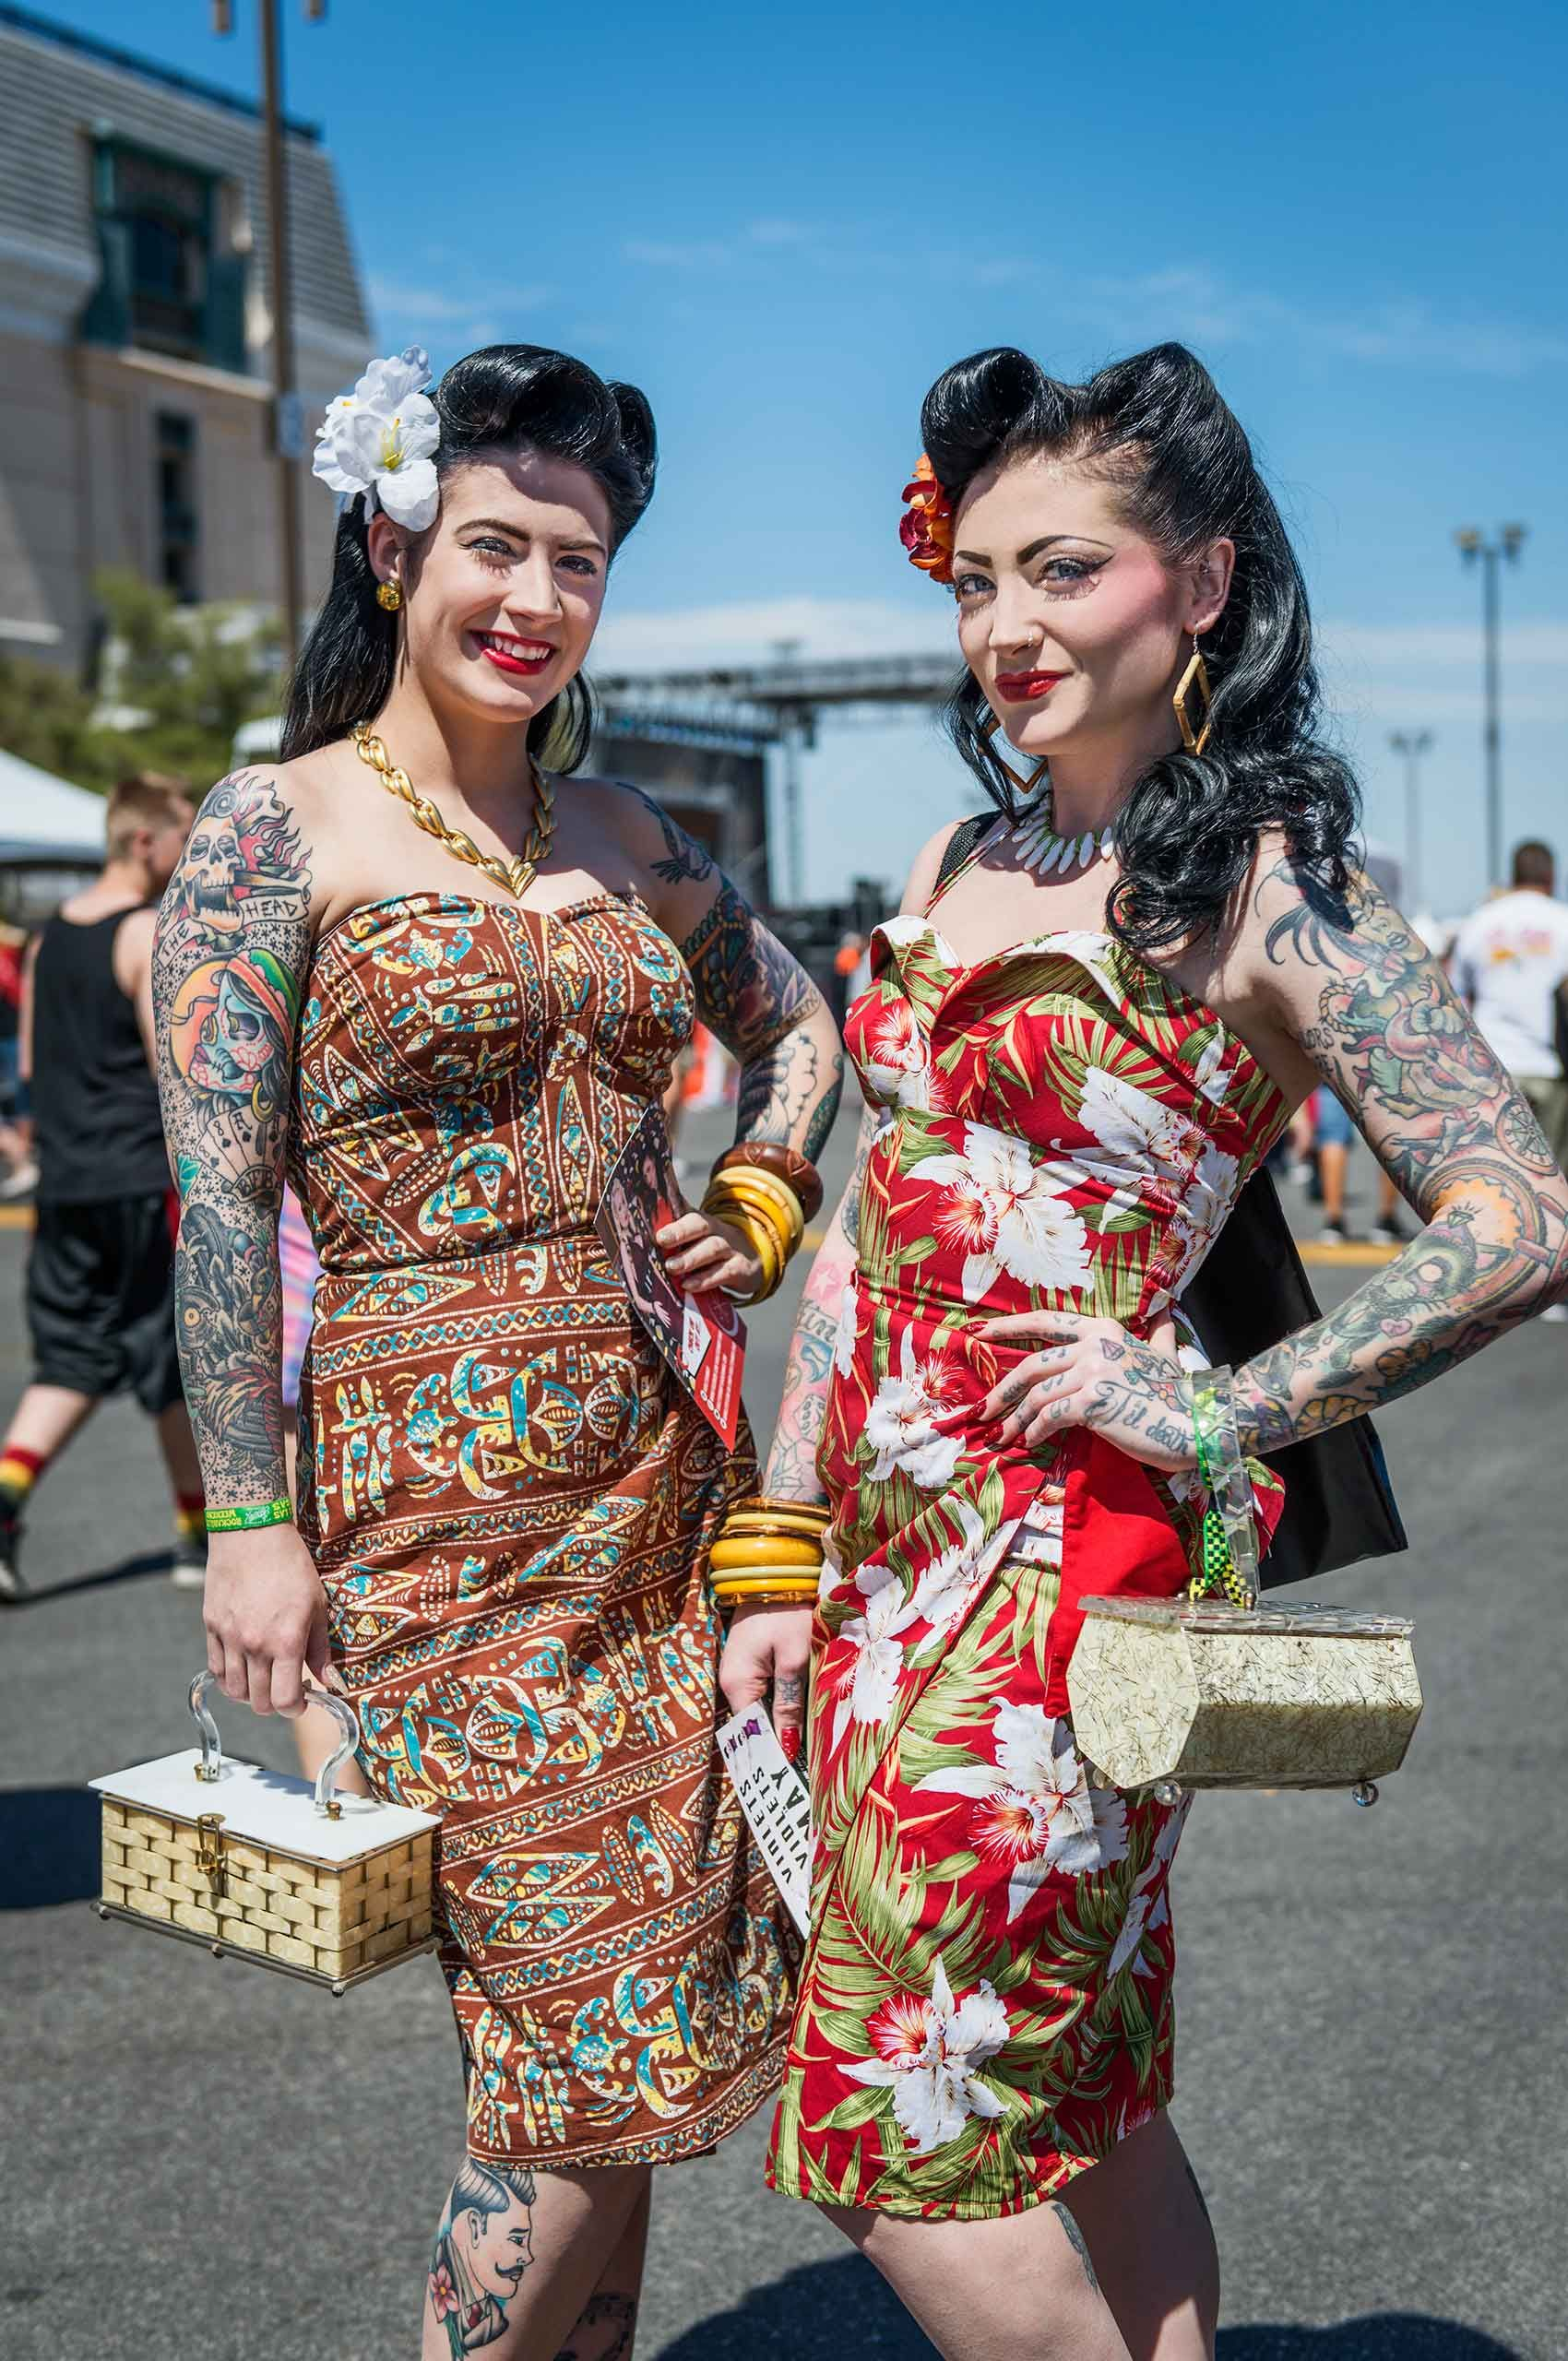 tattooed-ladies-vivalasvegas-rockabillyweekend-lasvegas-by-henrikolundphotography.jpg